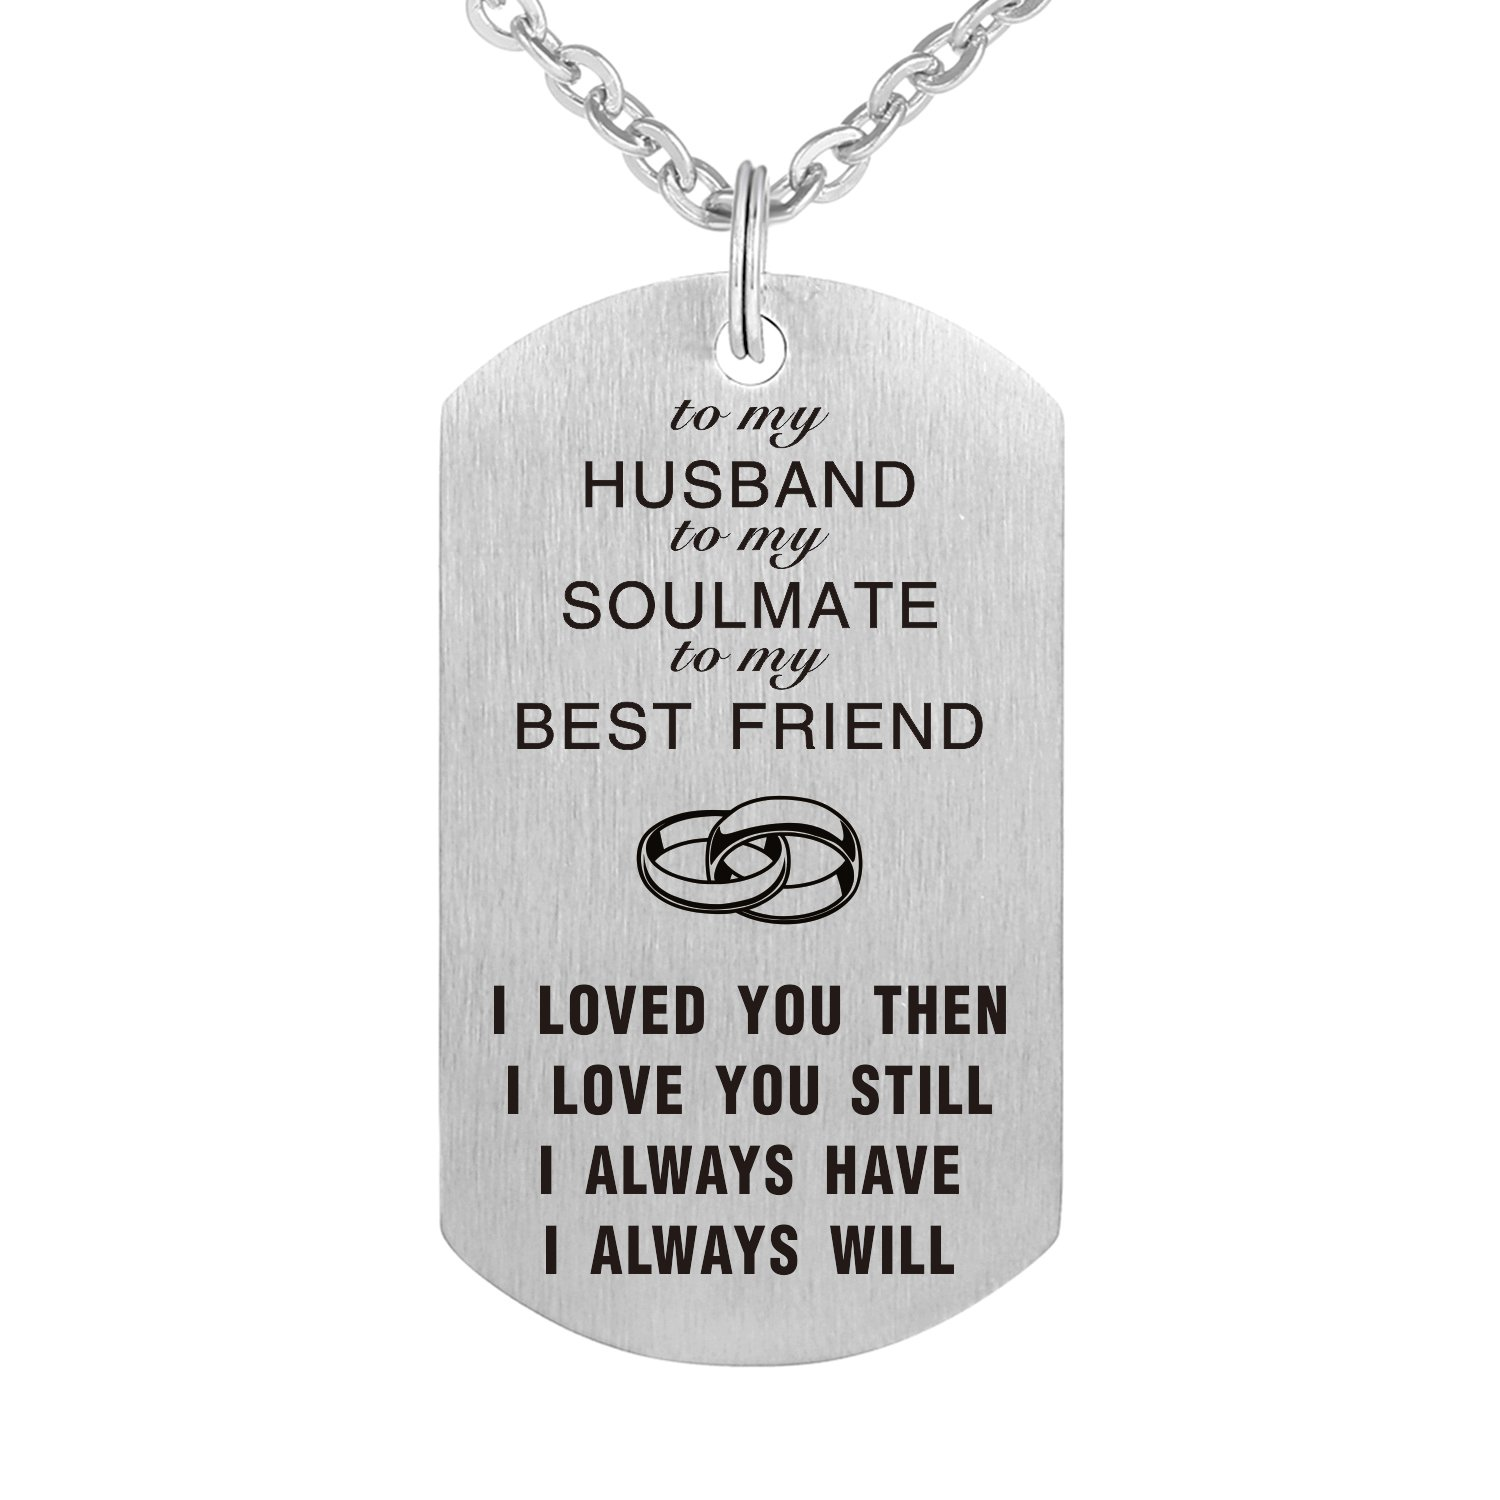 To My Love Wife Husband Soulmate BestFriend Dog Tag Necklace Stainless Steel Military Dogtags Necklaces CraDiabh UK_B0789SMCGG